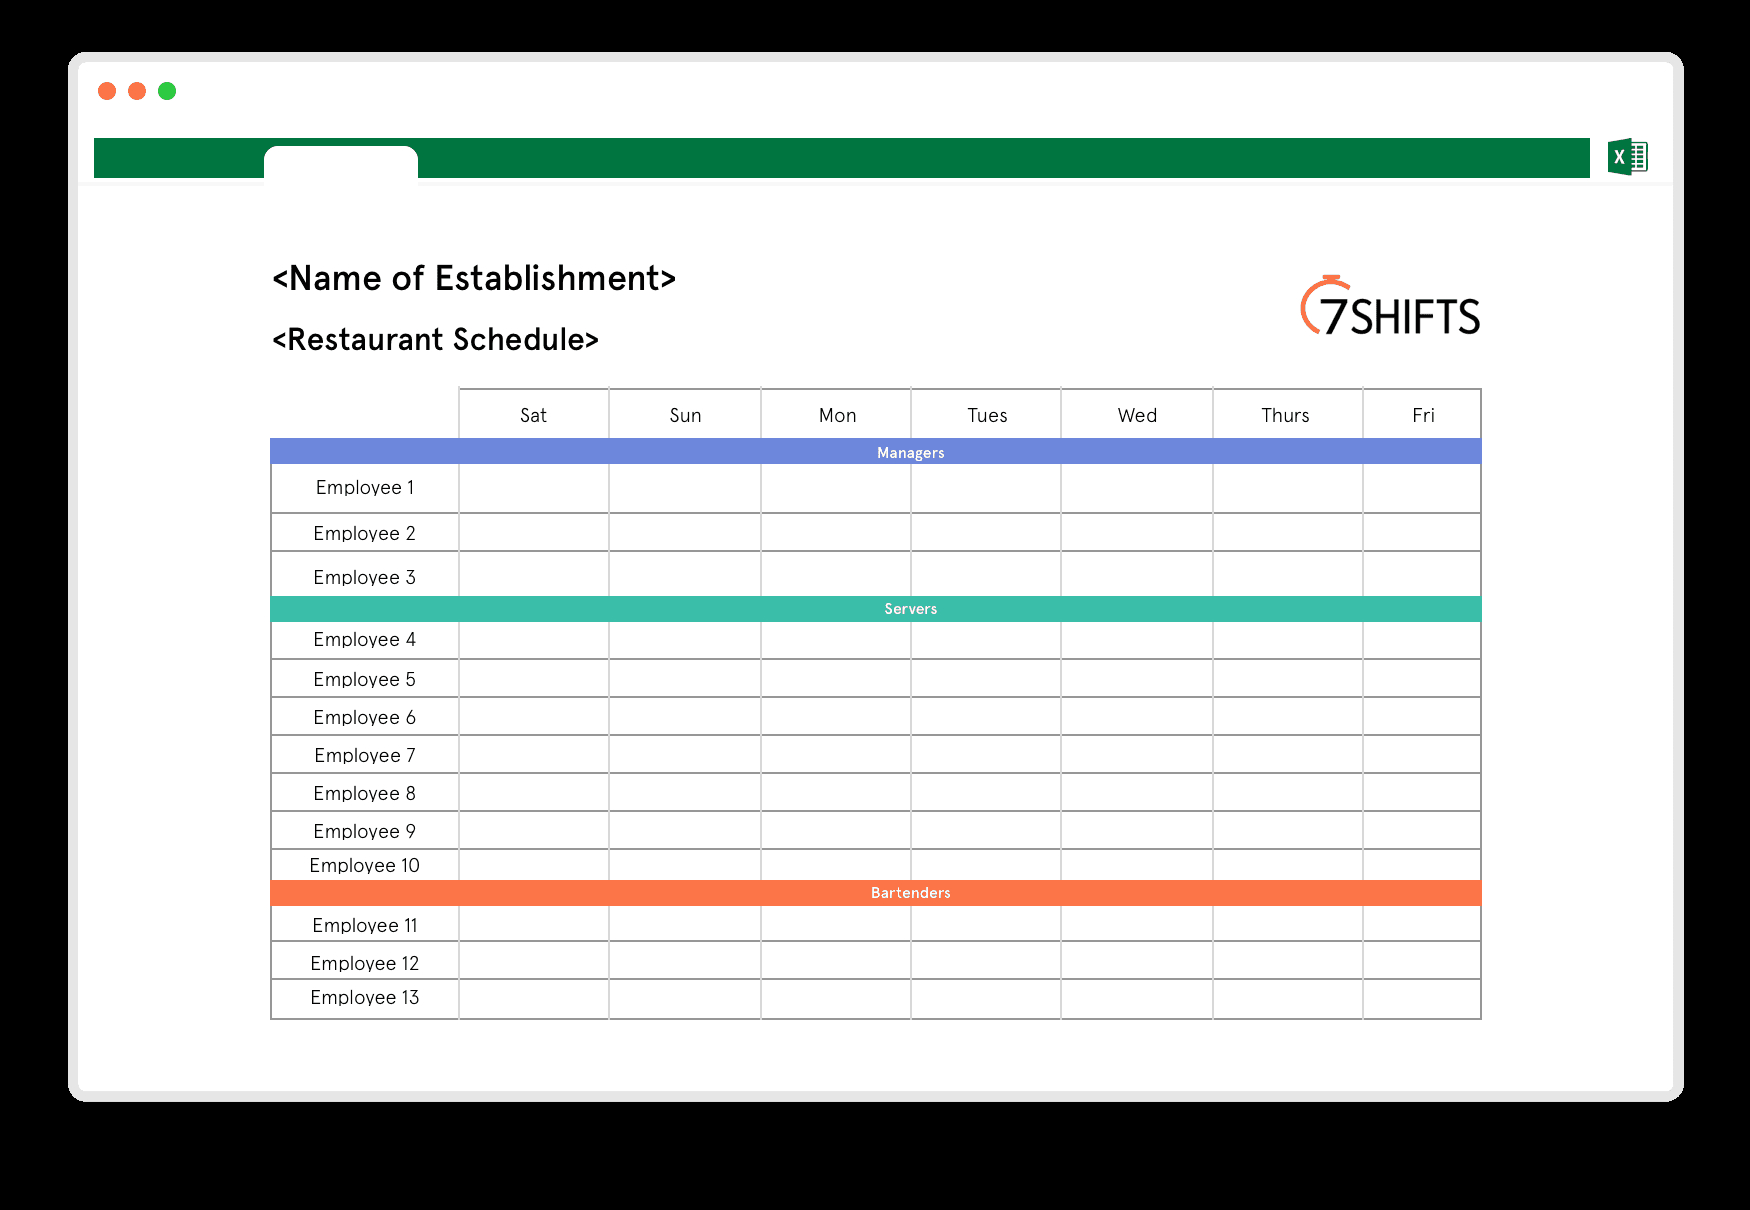 Restaurant Schedule Excel Template | 7Shifts With Employee Shift Schedule Template Excel